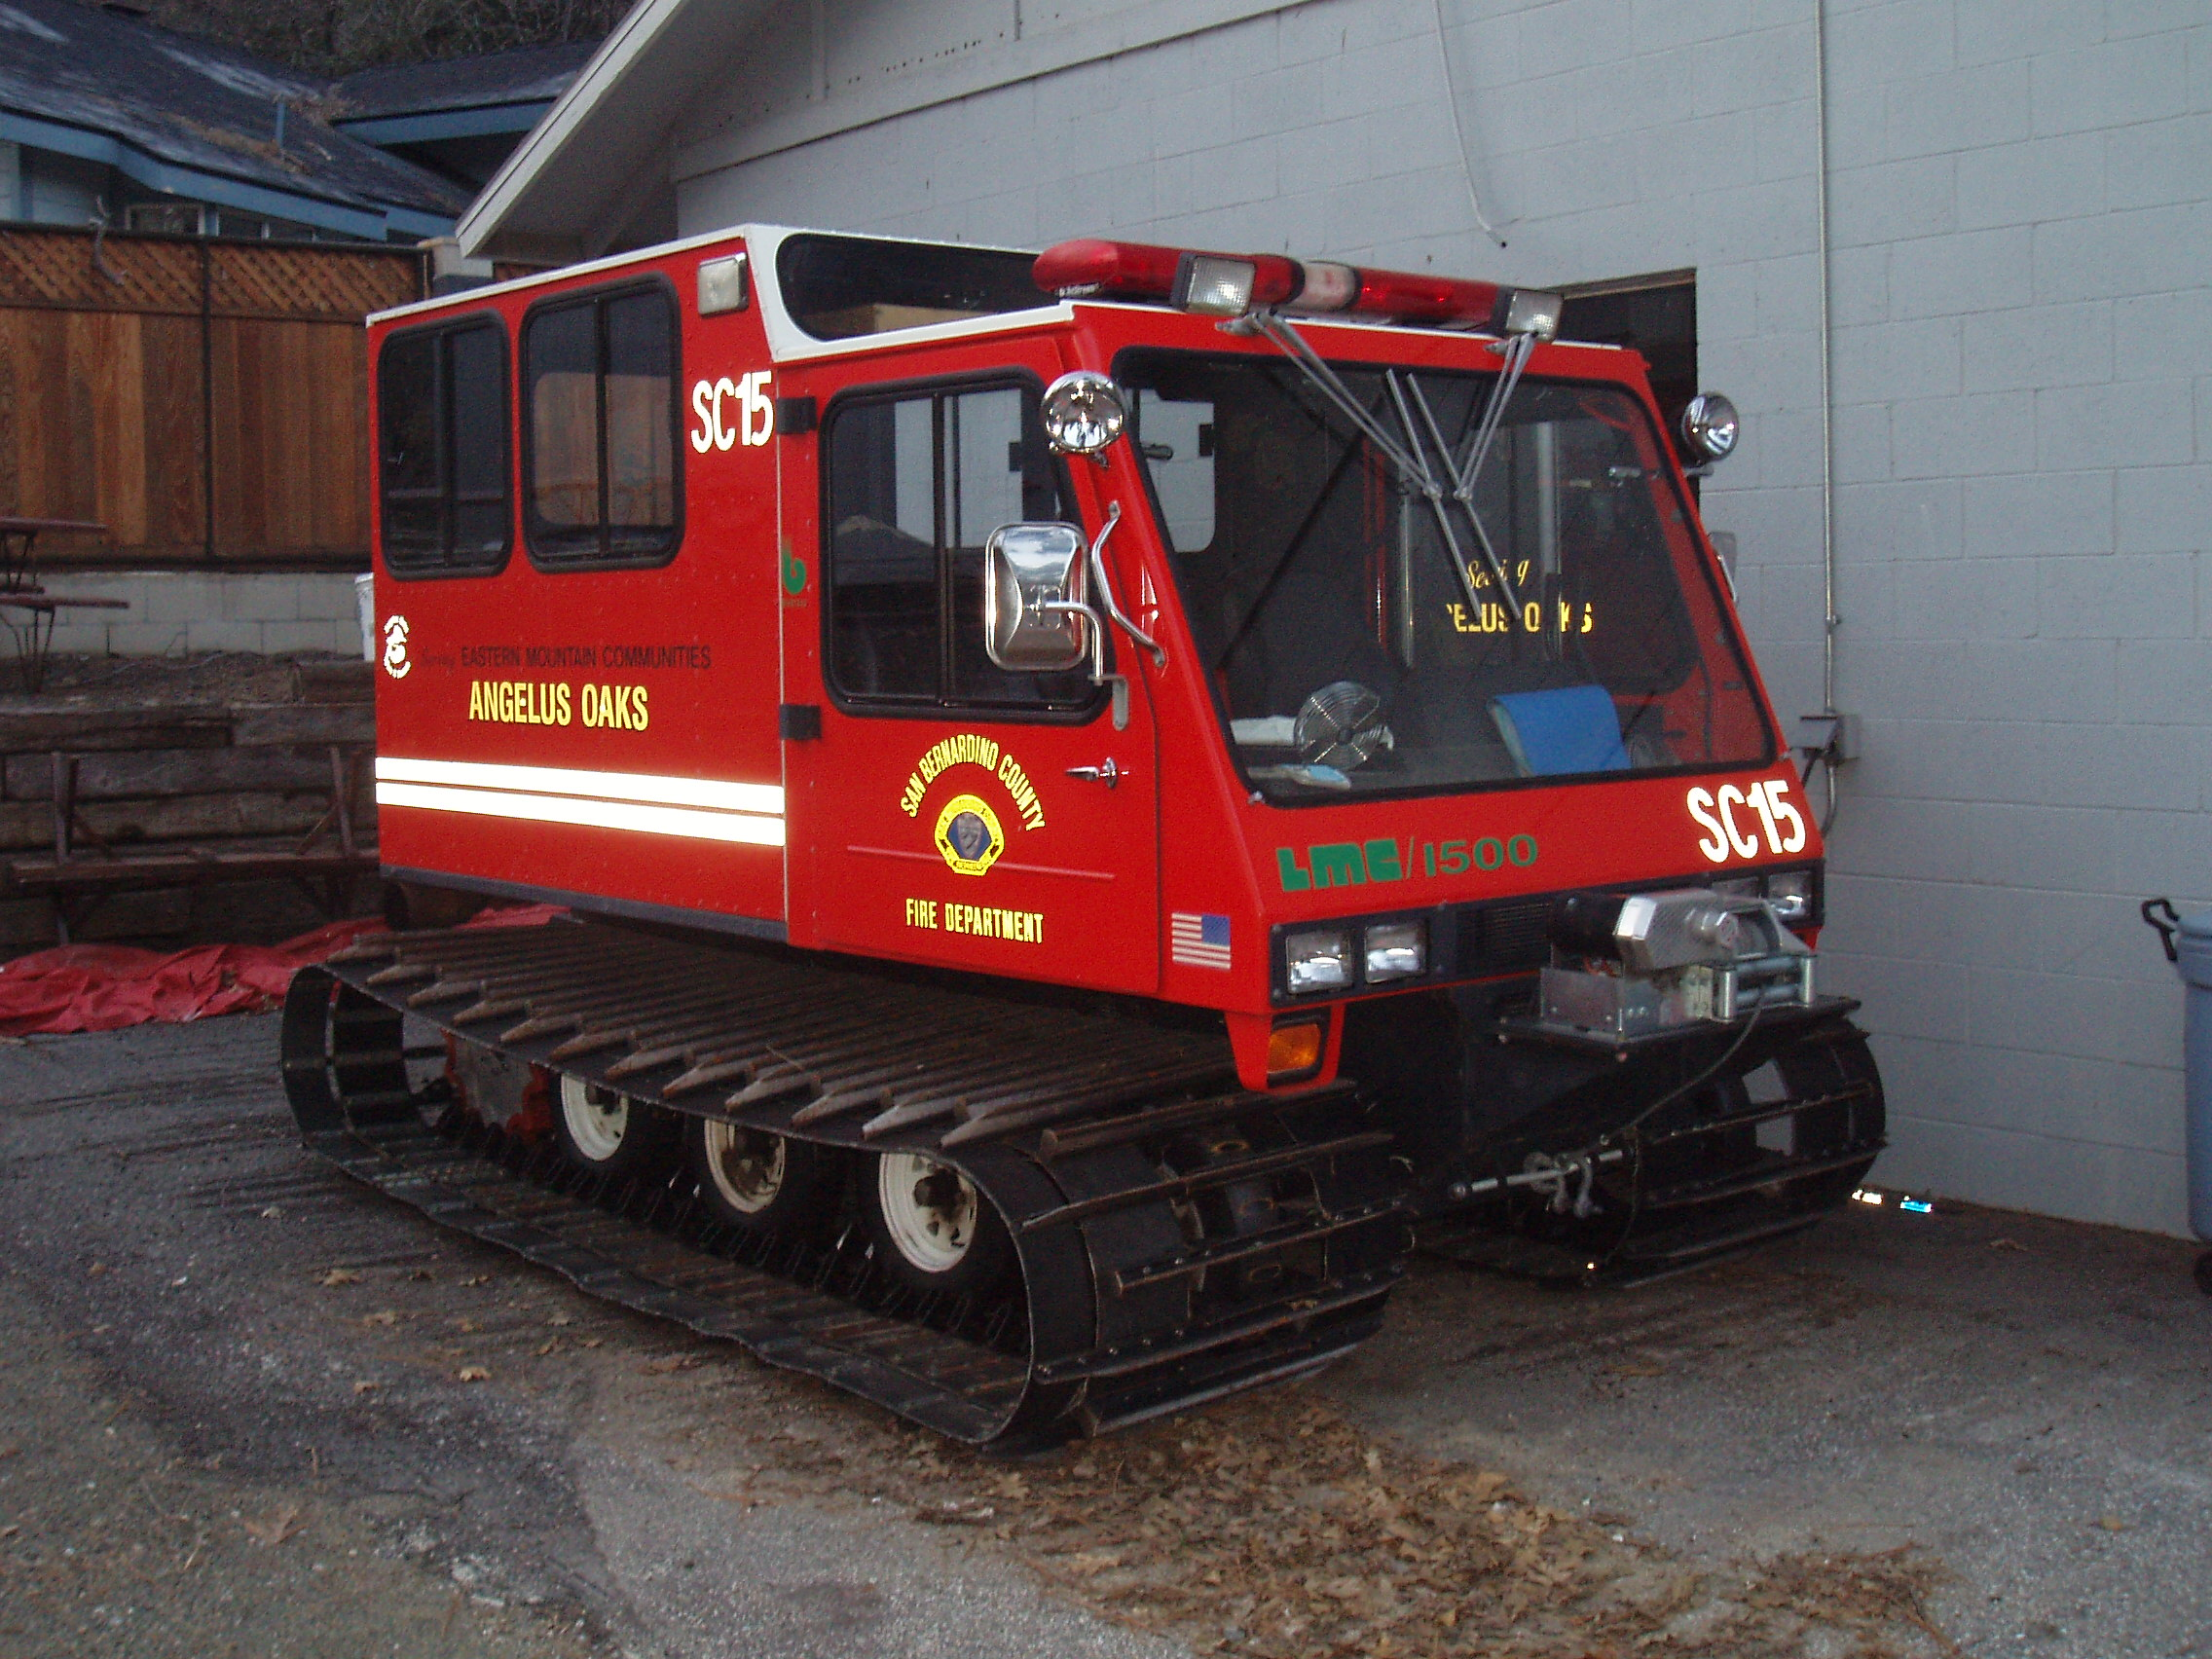 Craigslist Vehicles For Sale >> Snow cat search and rescue | Pics4Learning